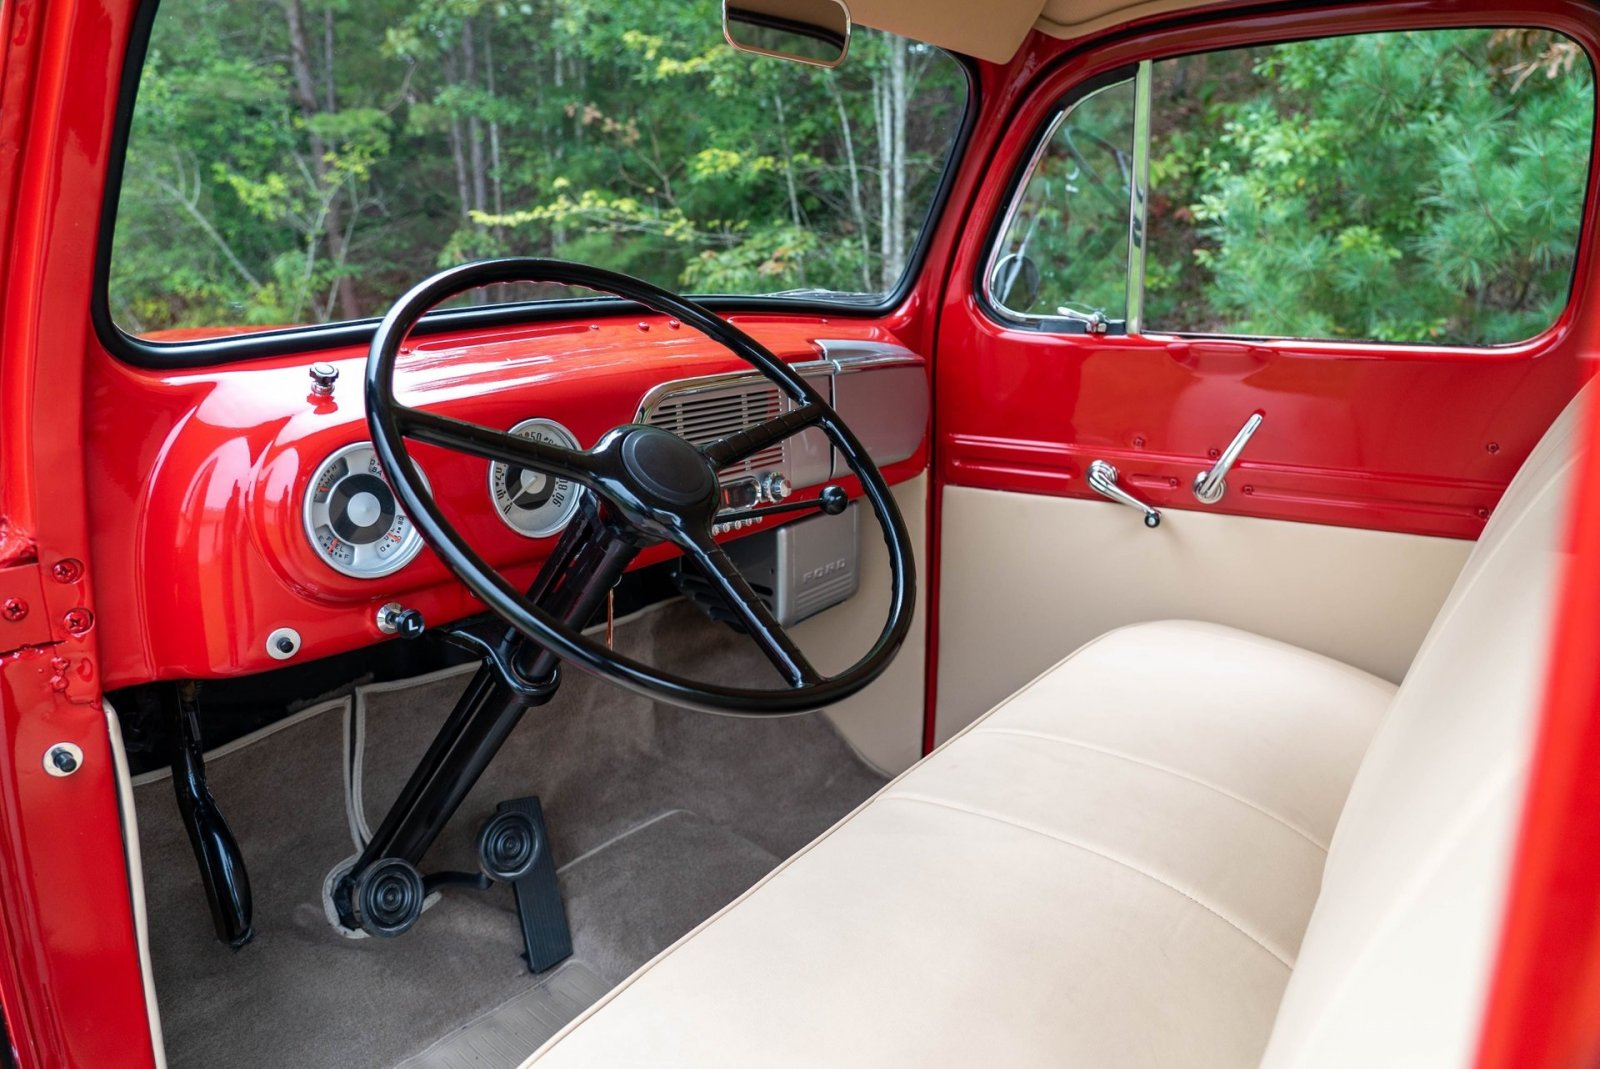 1952 FORD F1 FIVE STAR CAB 12 TON - For Sale 7.jpg